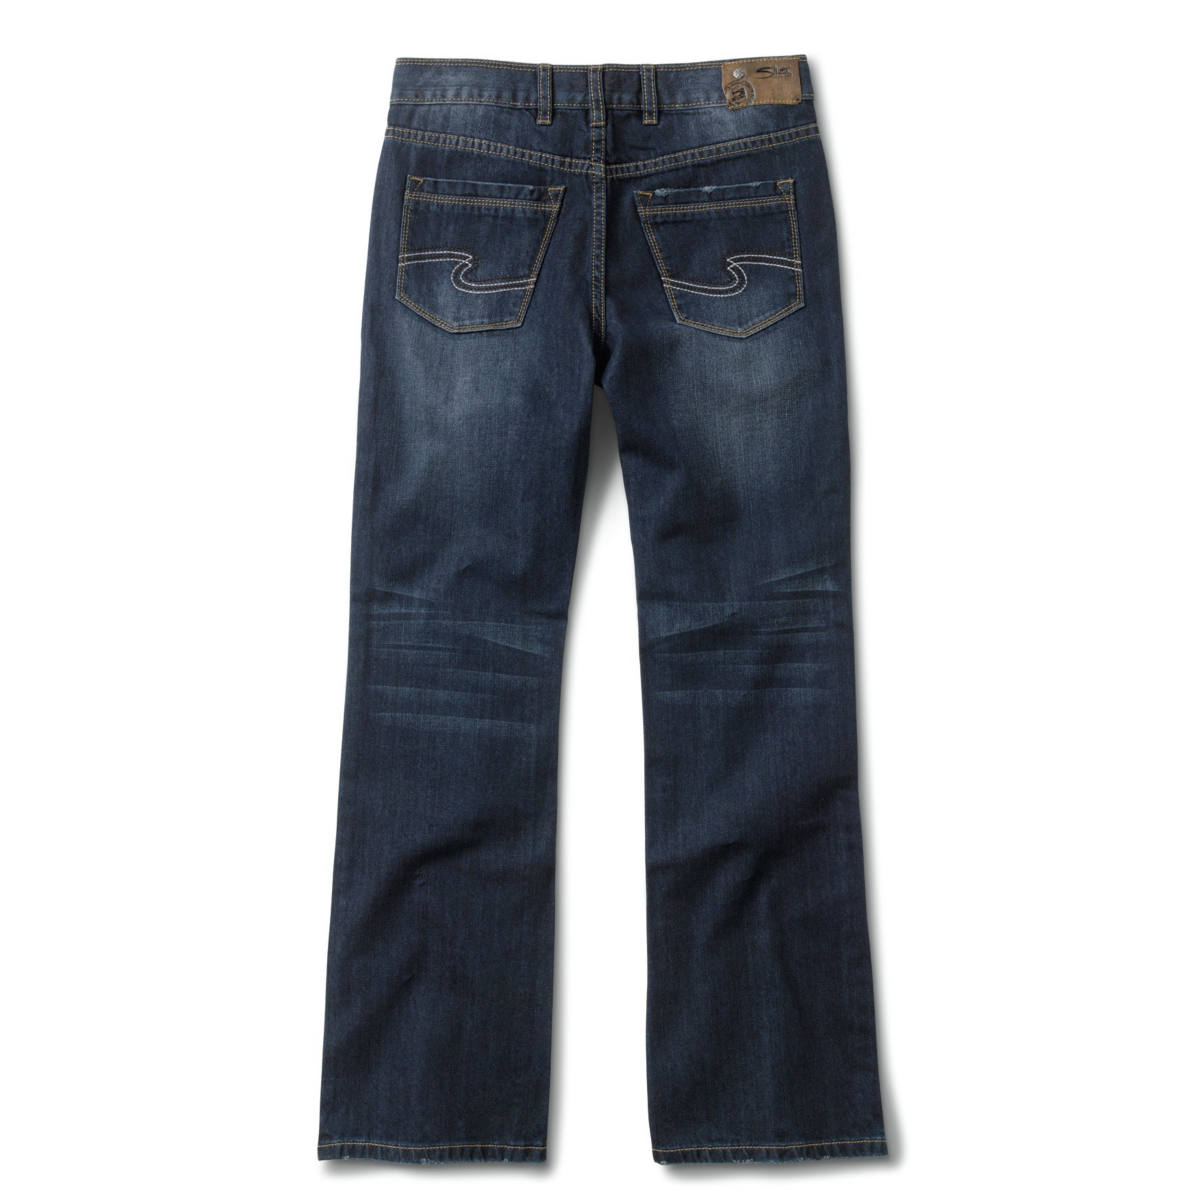 Silver Jeans Clearance Sale - Jeans Am